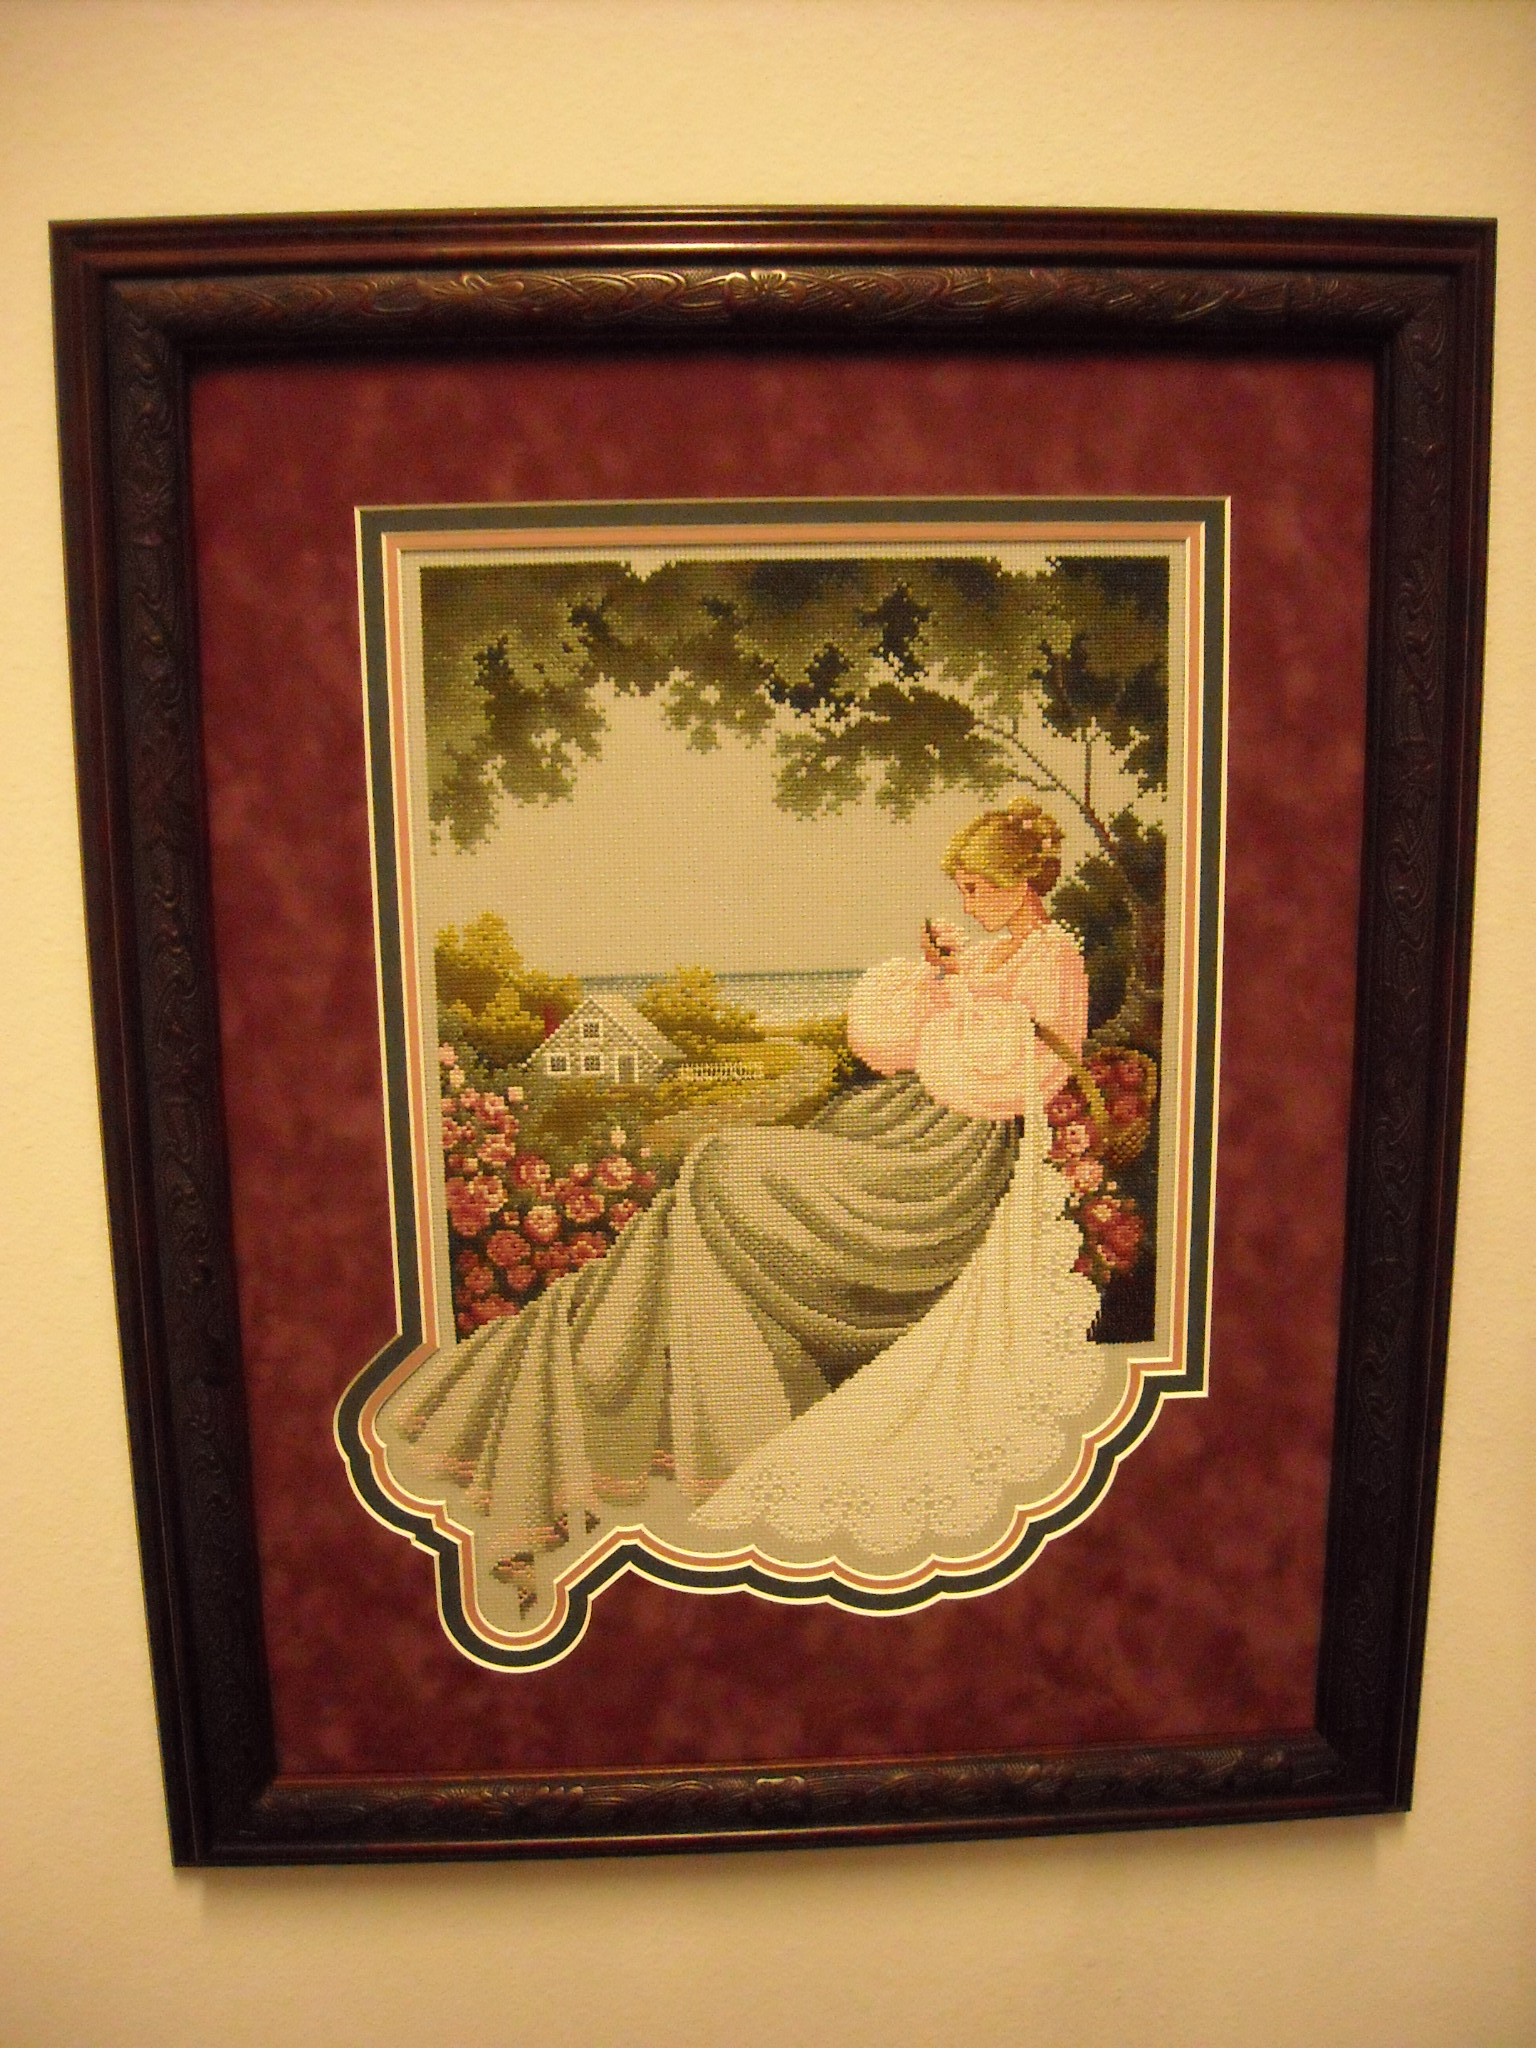 Needlework and custom matting